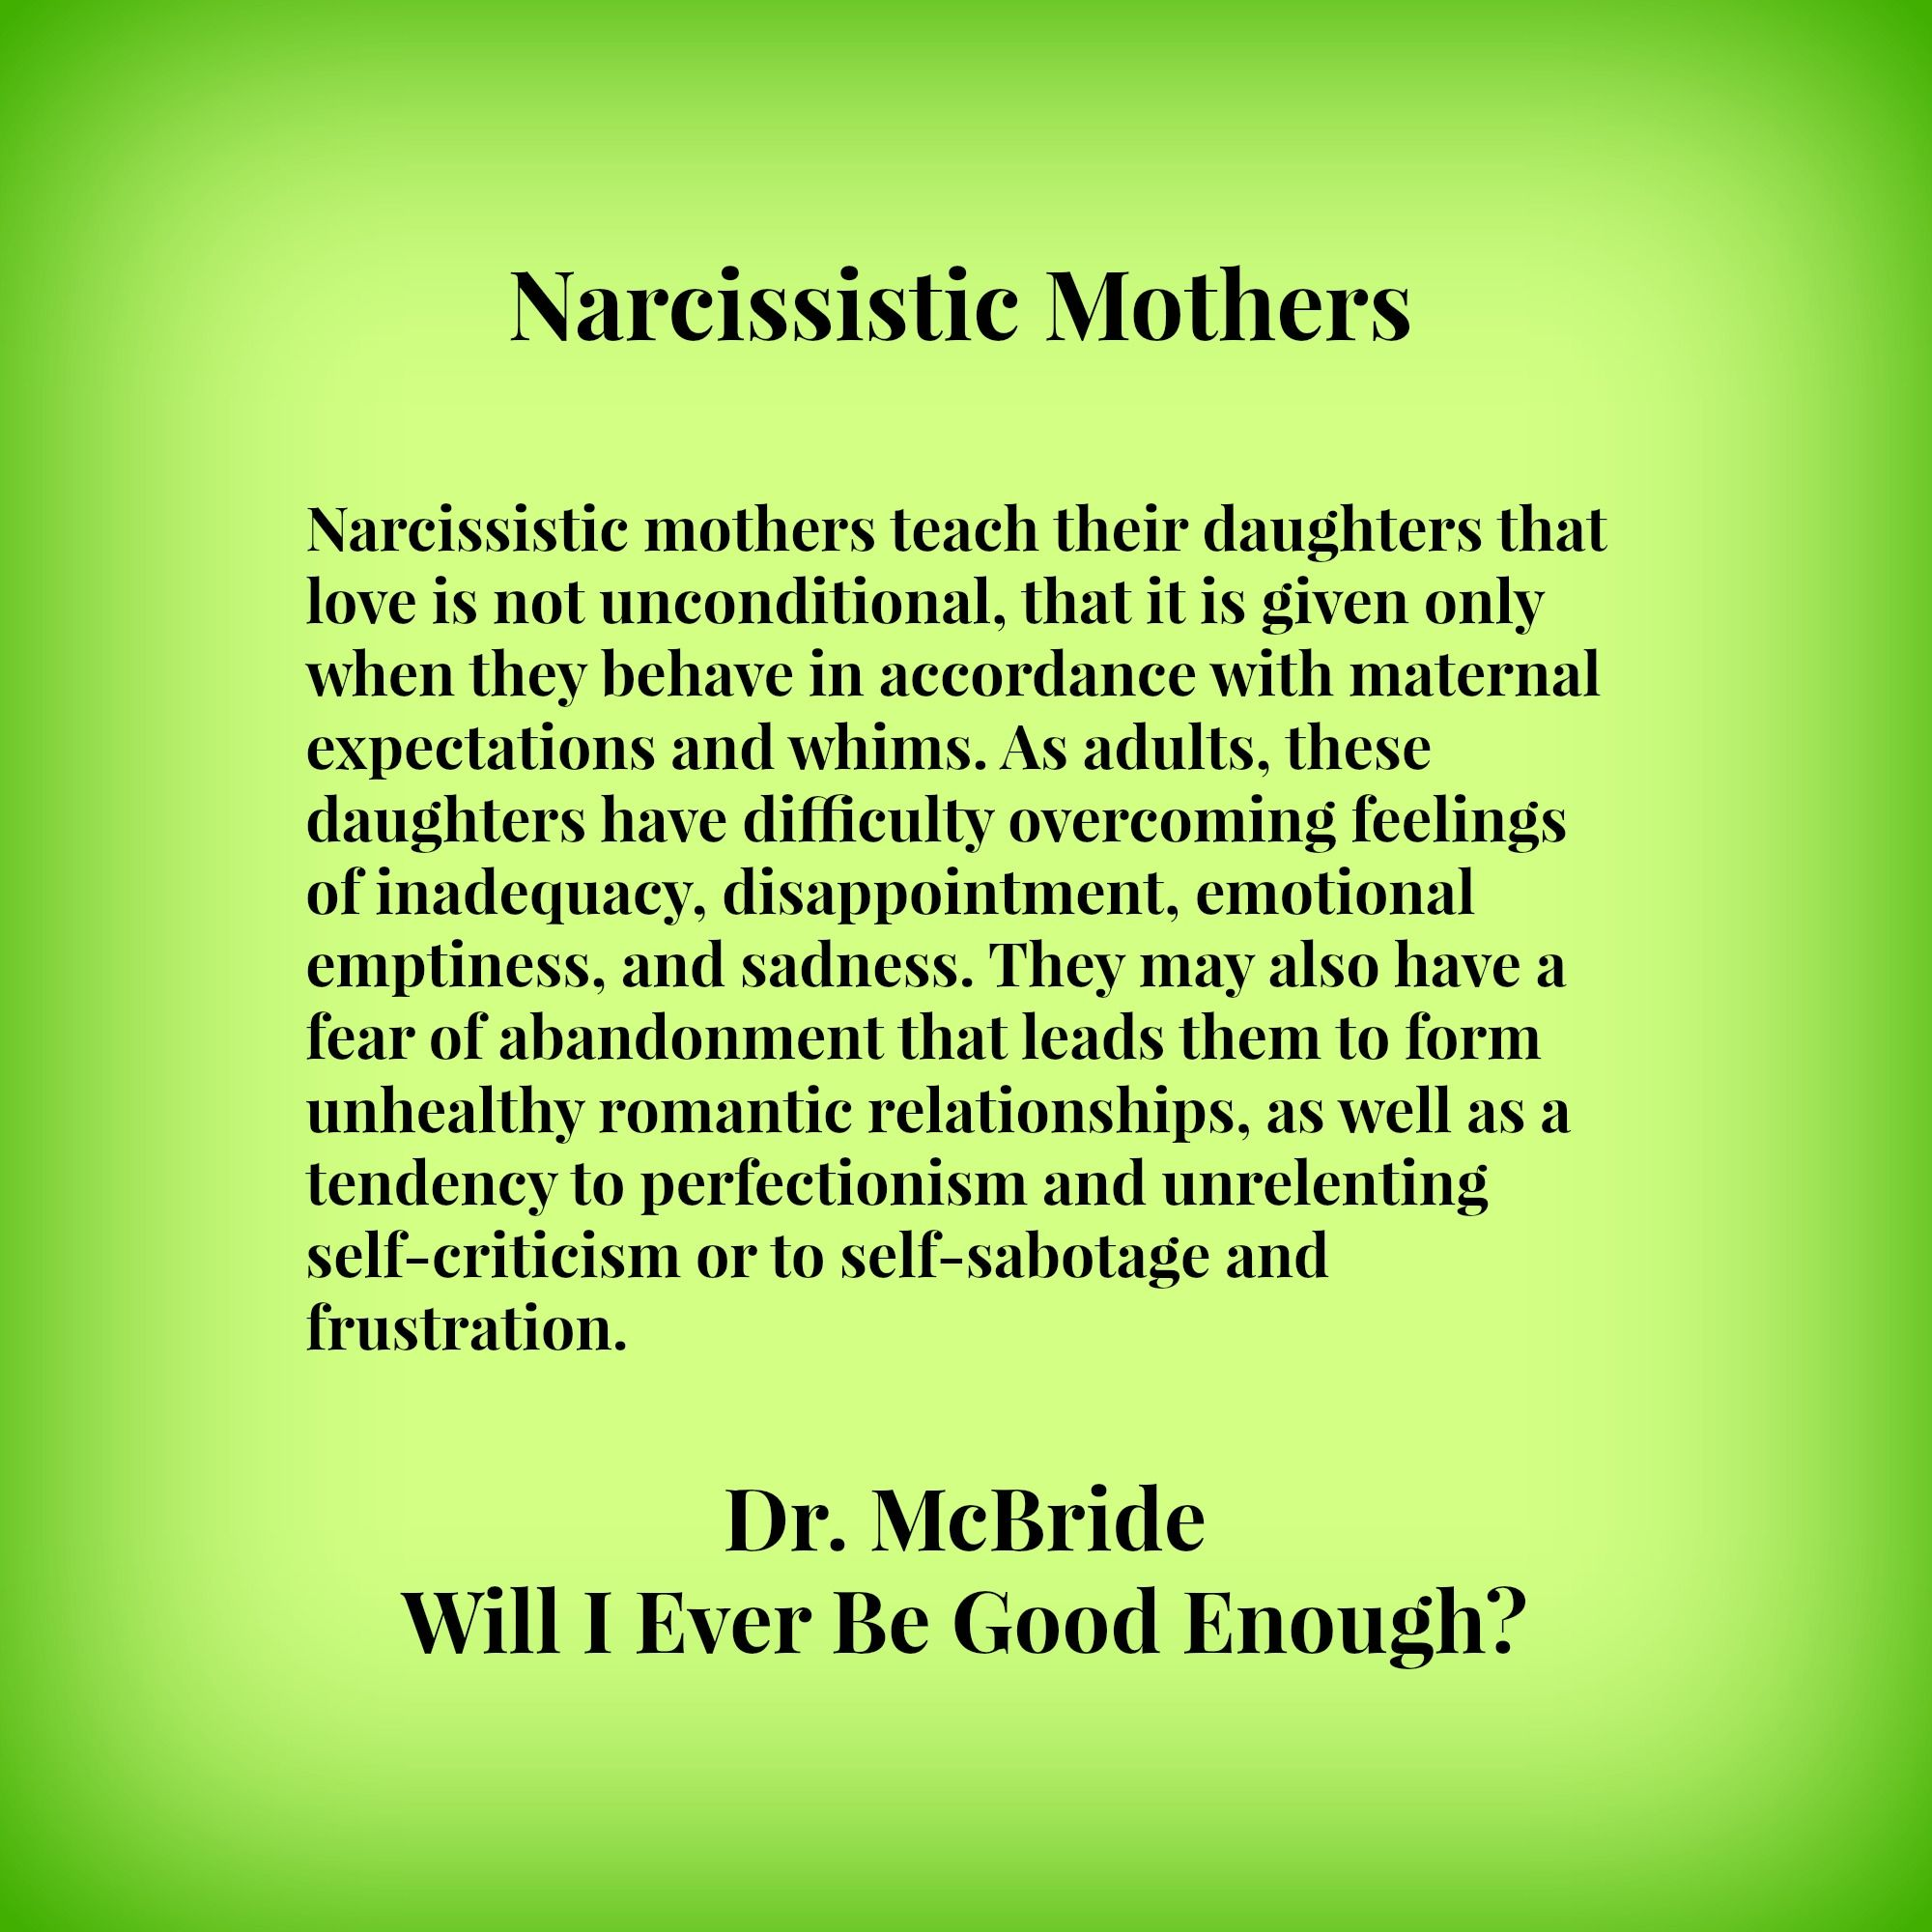 Narcissist mothers